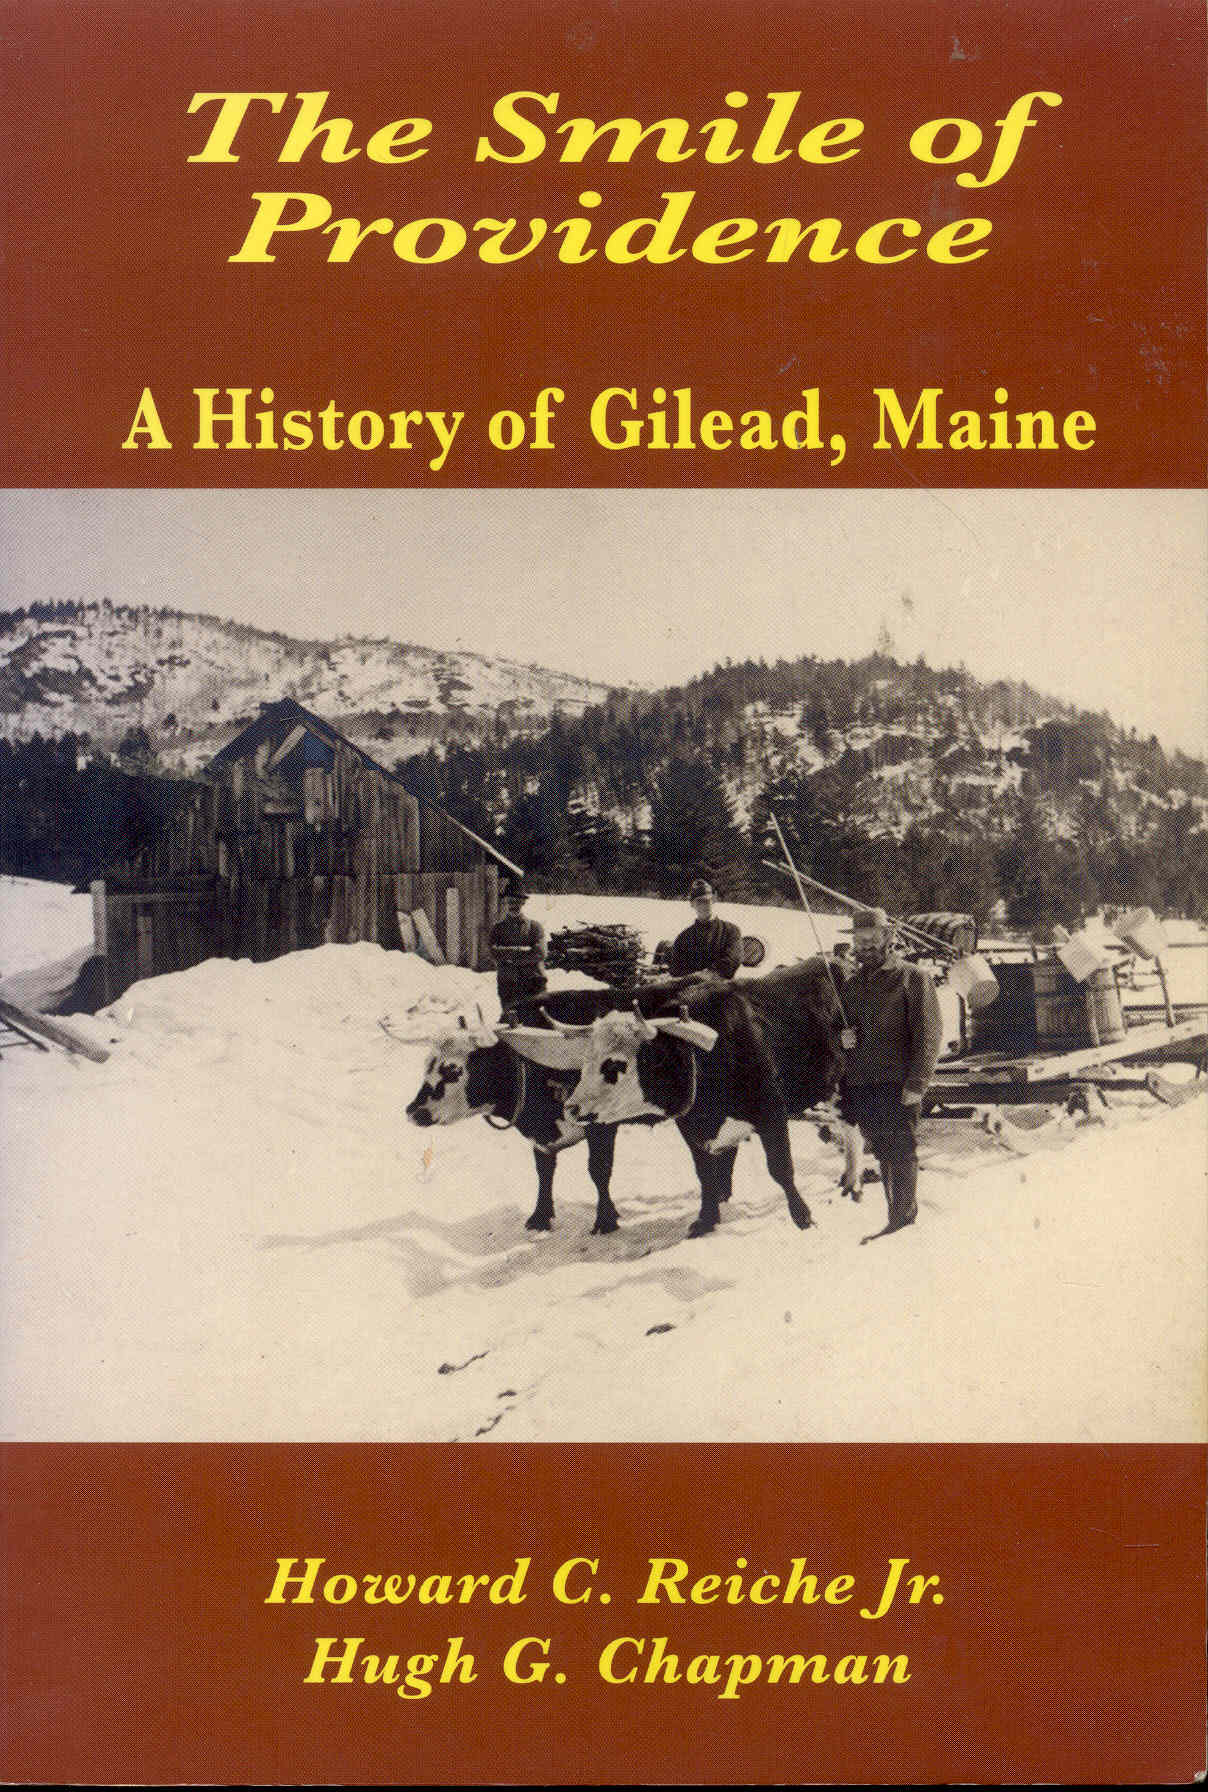 Image for The Smile of Providence: A History of Gilead, Maine 1804-2004